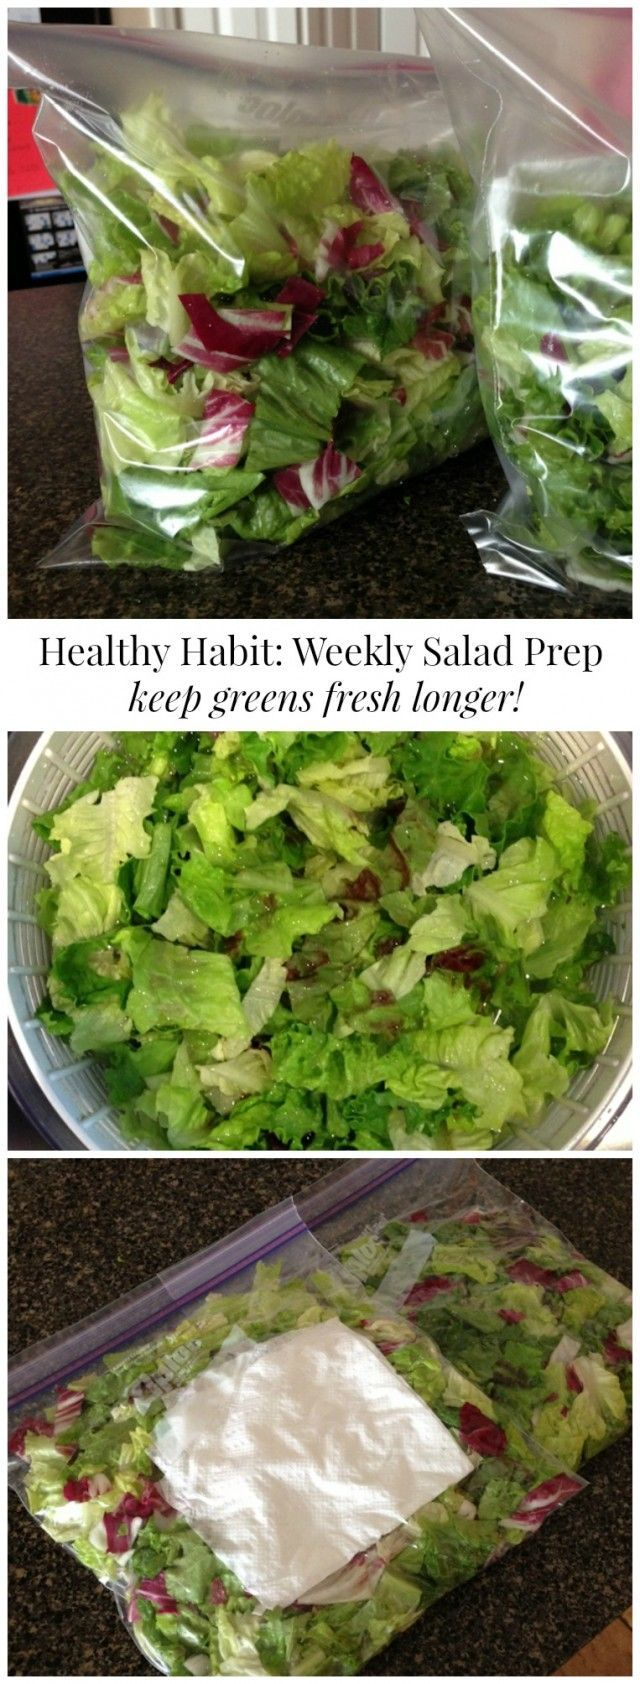 How I get myself to eat more salads! My weekly salad prep saves time in the long run, makes it convenient and the best part, keep my salad greens FRESH!